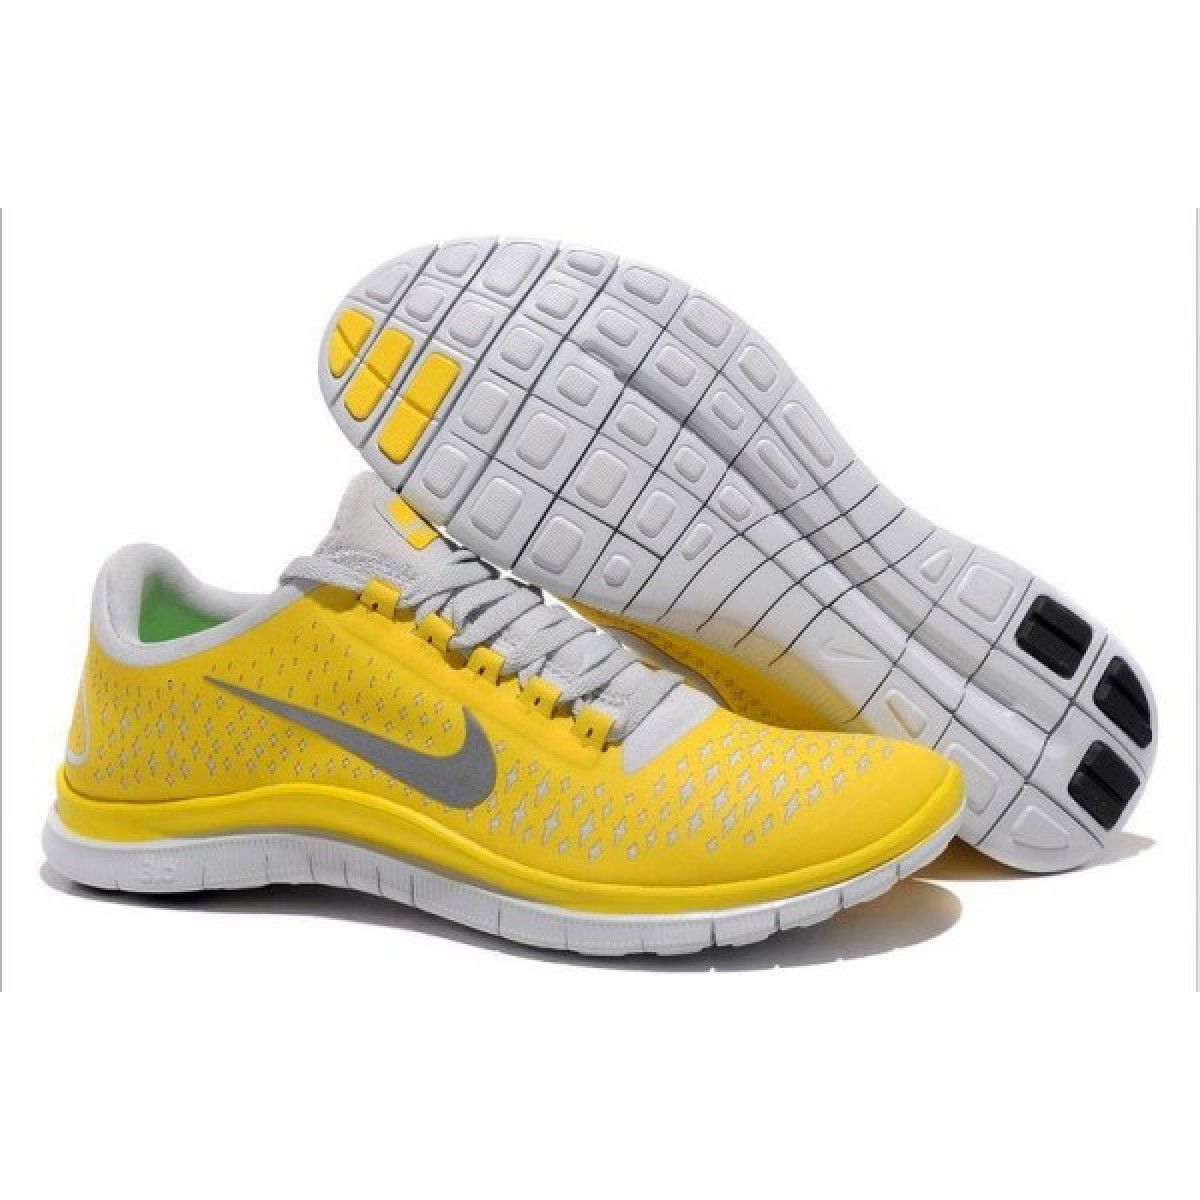 sneakers for cheap d0f7d 08e0a Nike Free 3.0 V4 Mens Yellow Grey